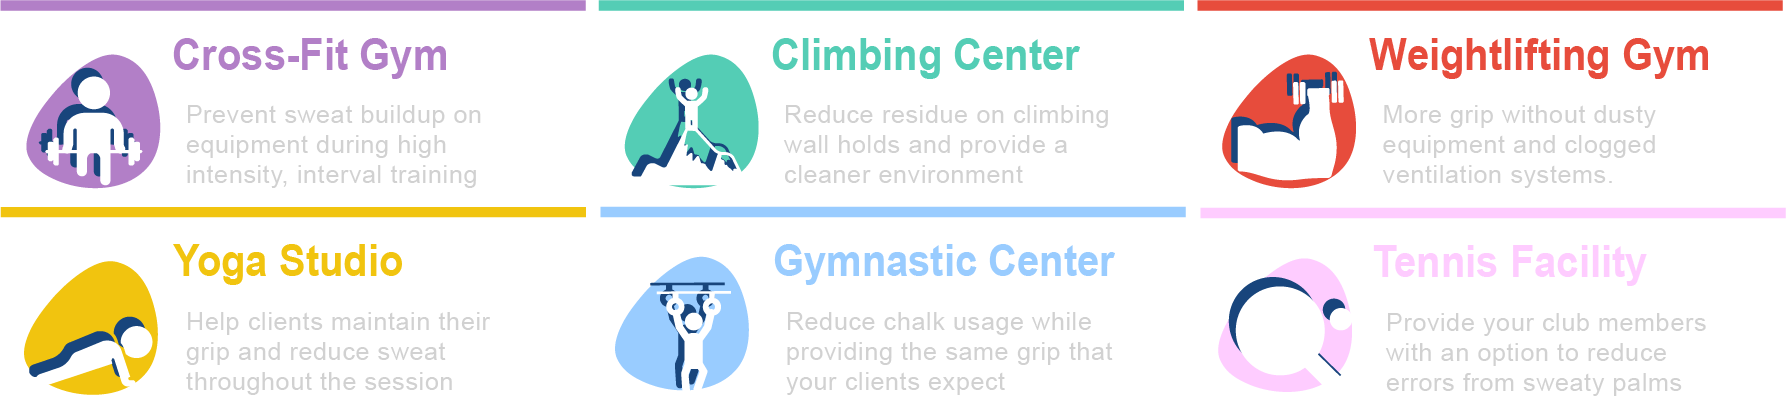 Chak Products liquid chalk provides benefits for cross-fit centers, climbing centers, weightlifting gyms, yoga studios, gymnastic centers, and tennis facilities. Reduces dust and mess on equipment, while providing grip enhancement